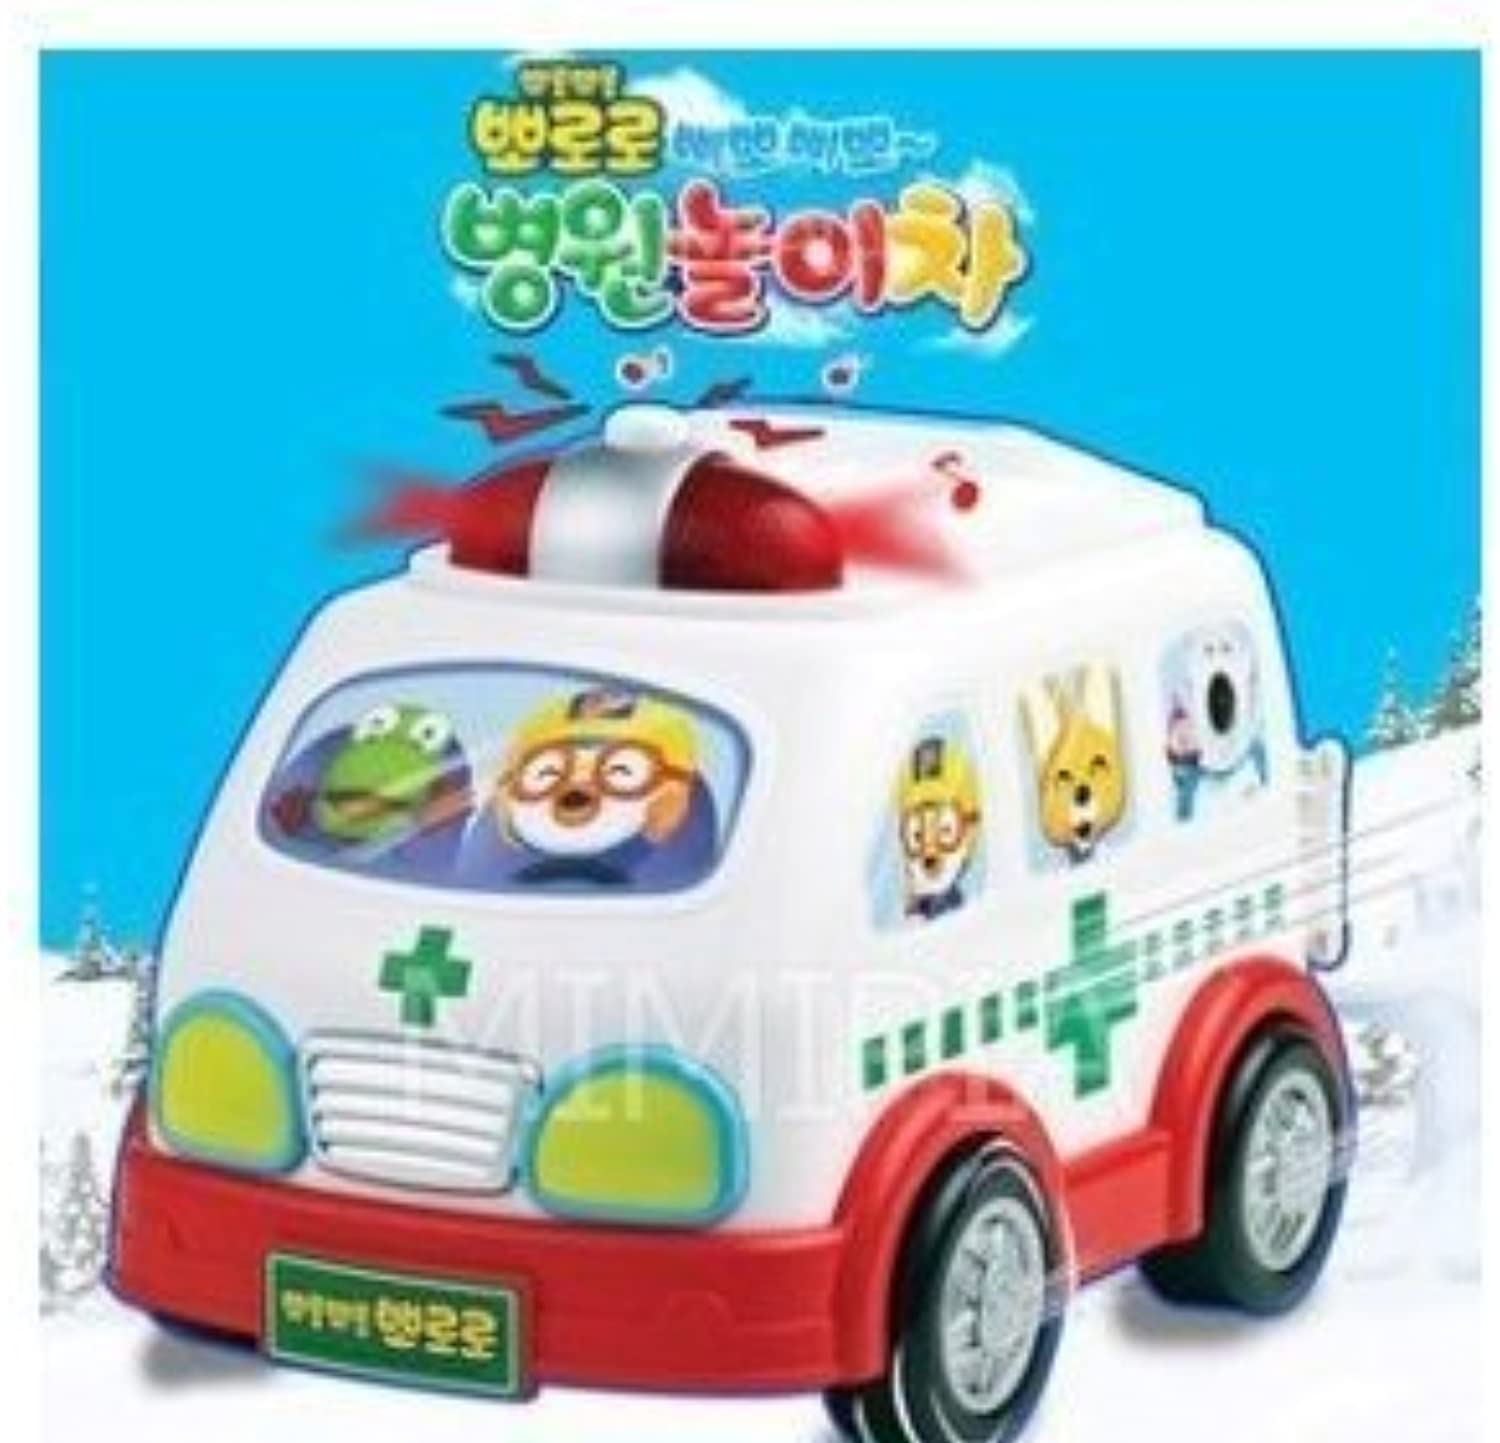 PGoldro & Friend PGoldro Learning Resources Pretend & Play Doctor Set with Ambulance pGoldro car by toy2b